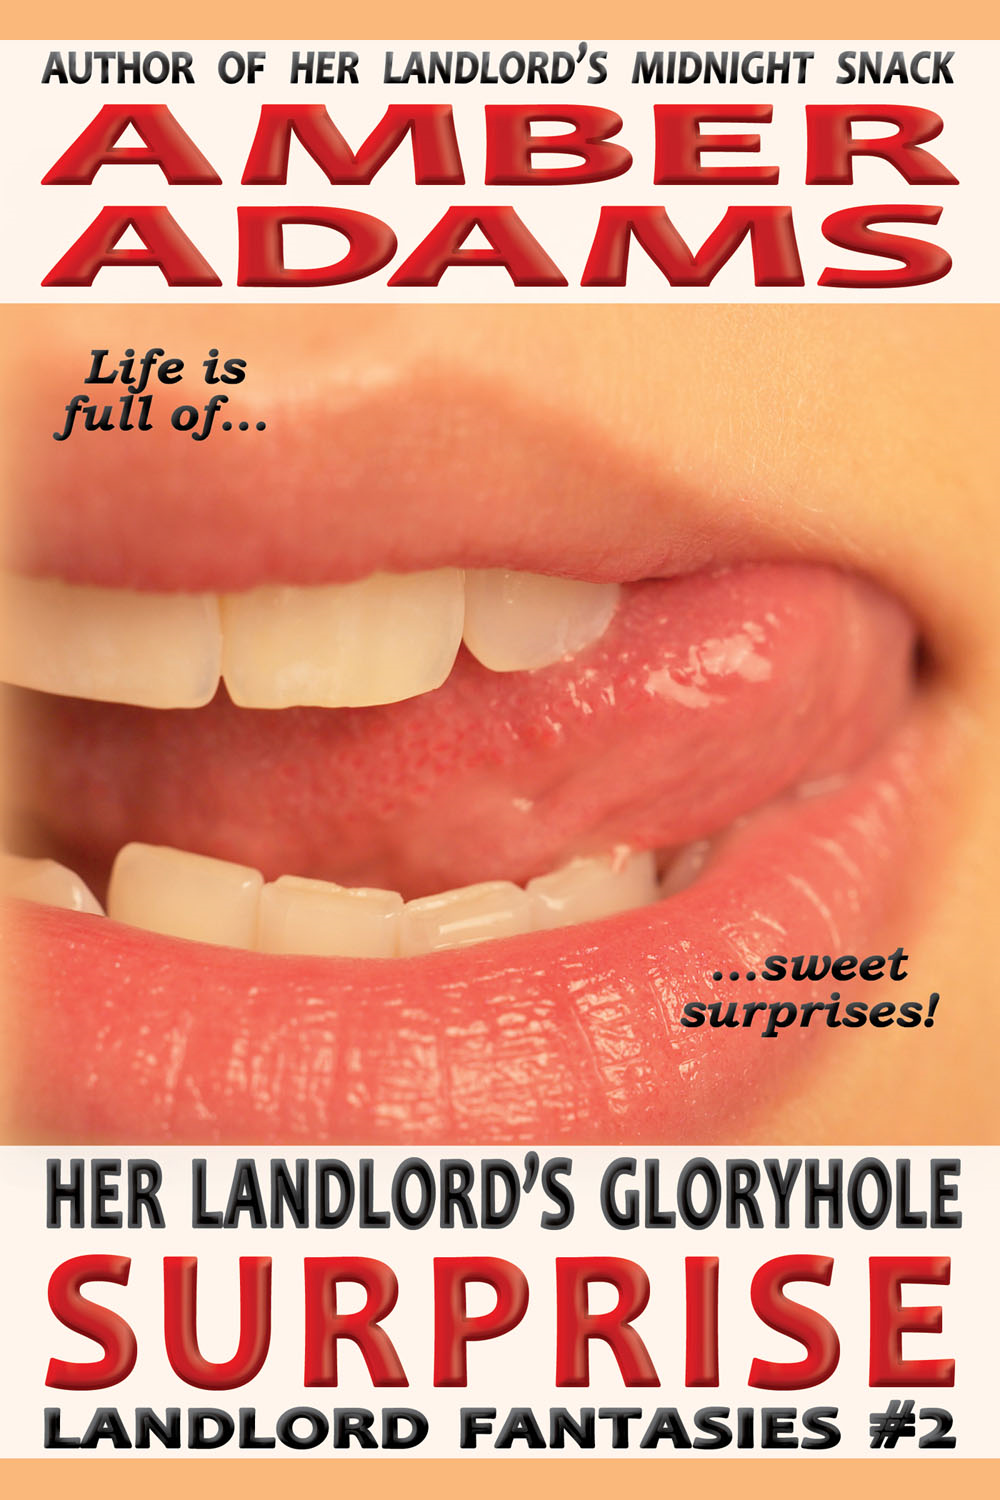 Amber Adams - Her Landlord's Gloryhole Surprise